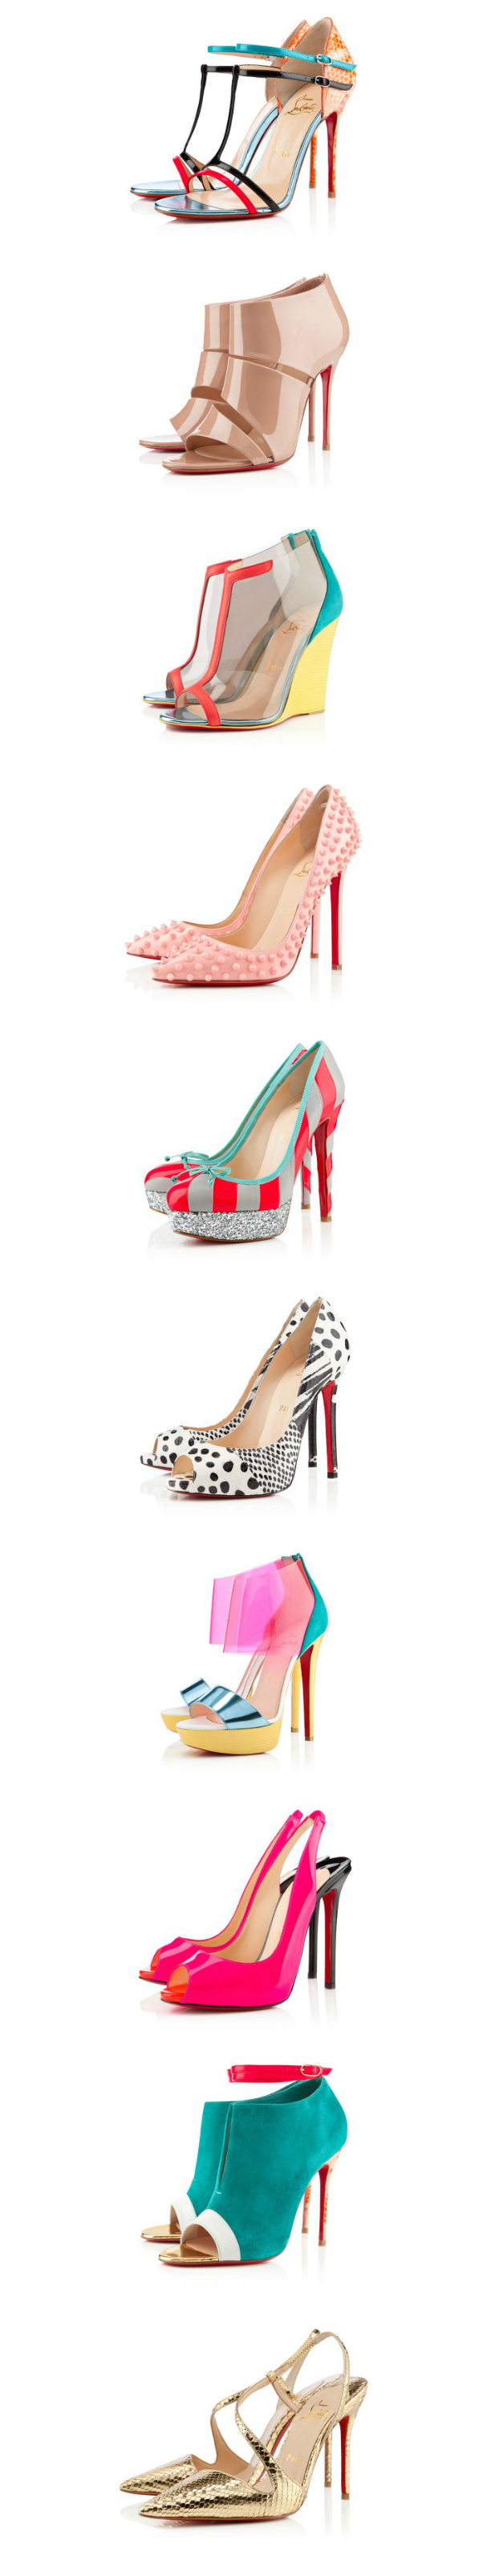 louboutincollage